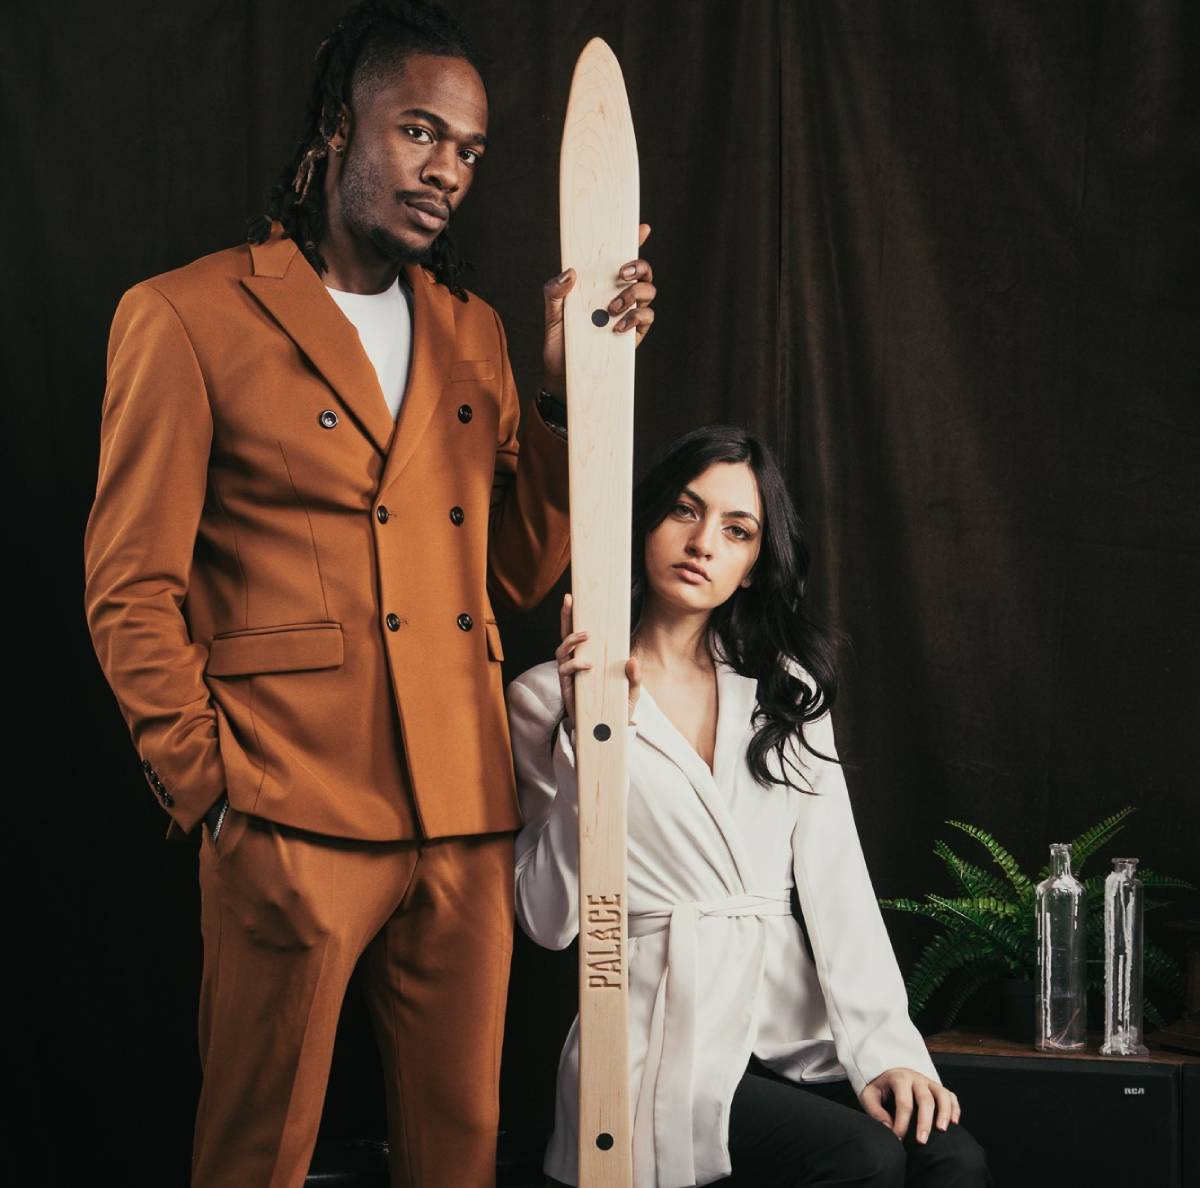 A suited man and seated woman posing with a Palace Shot Ski